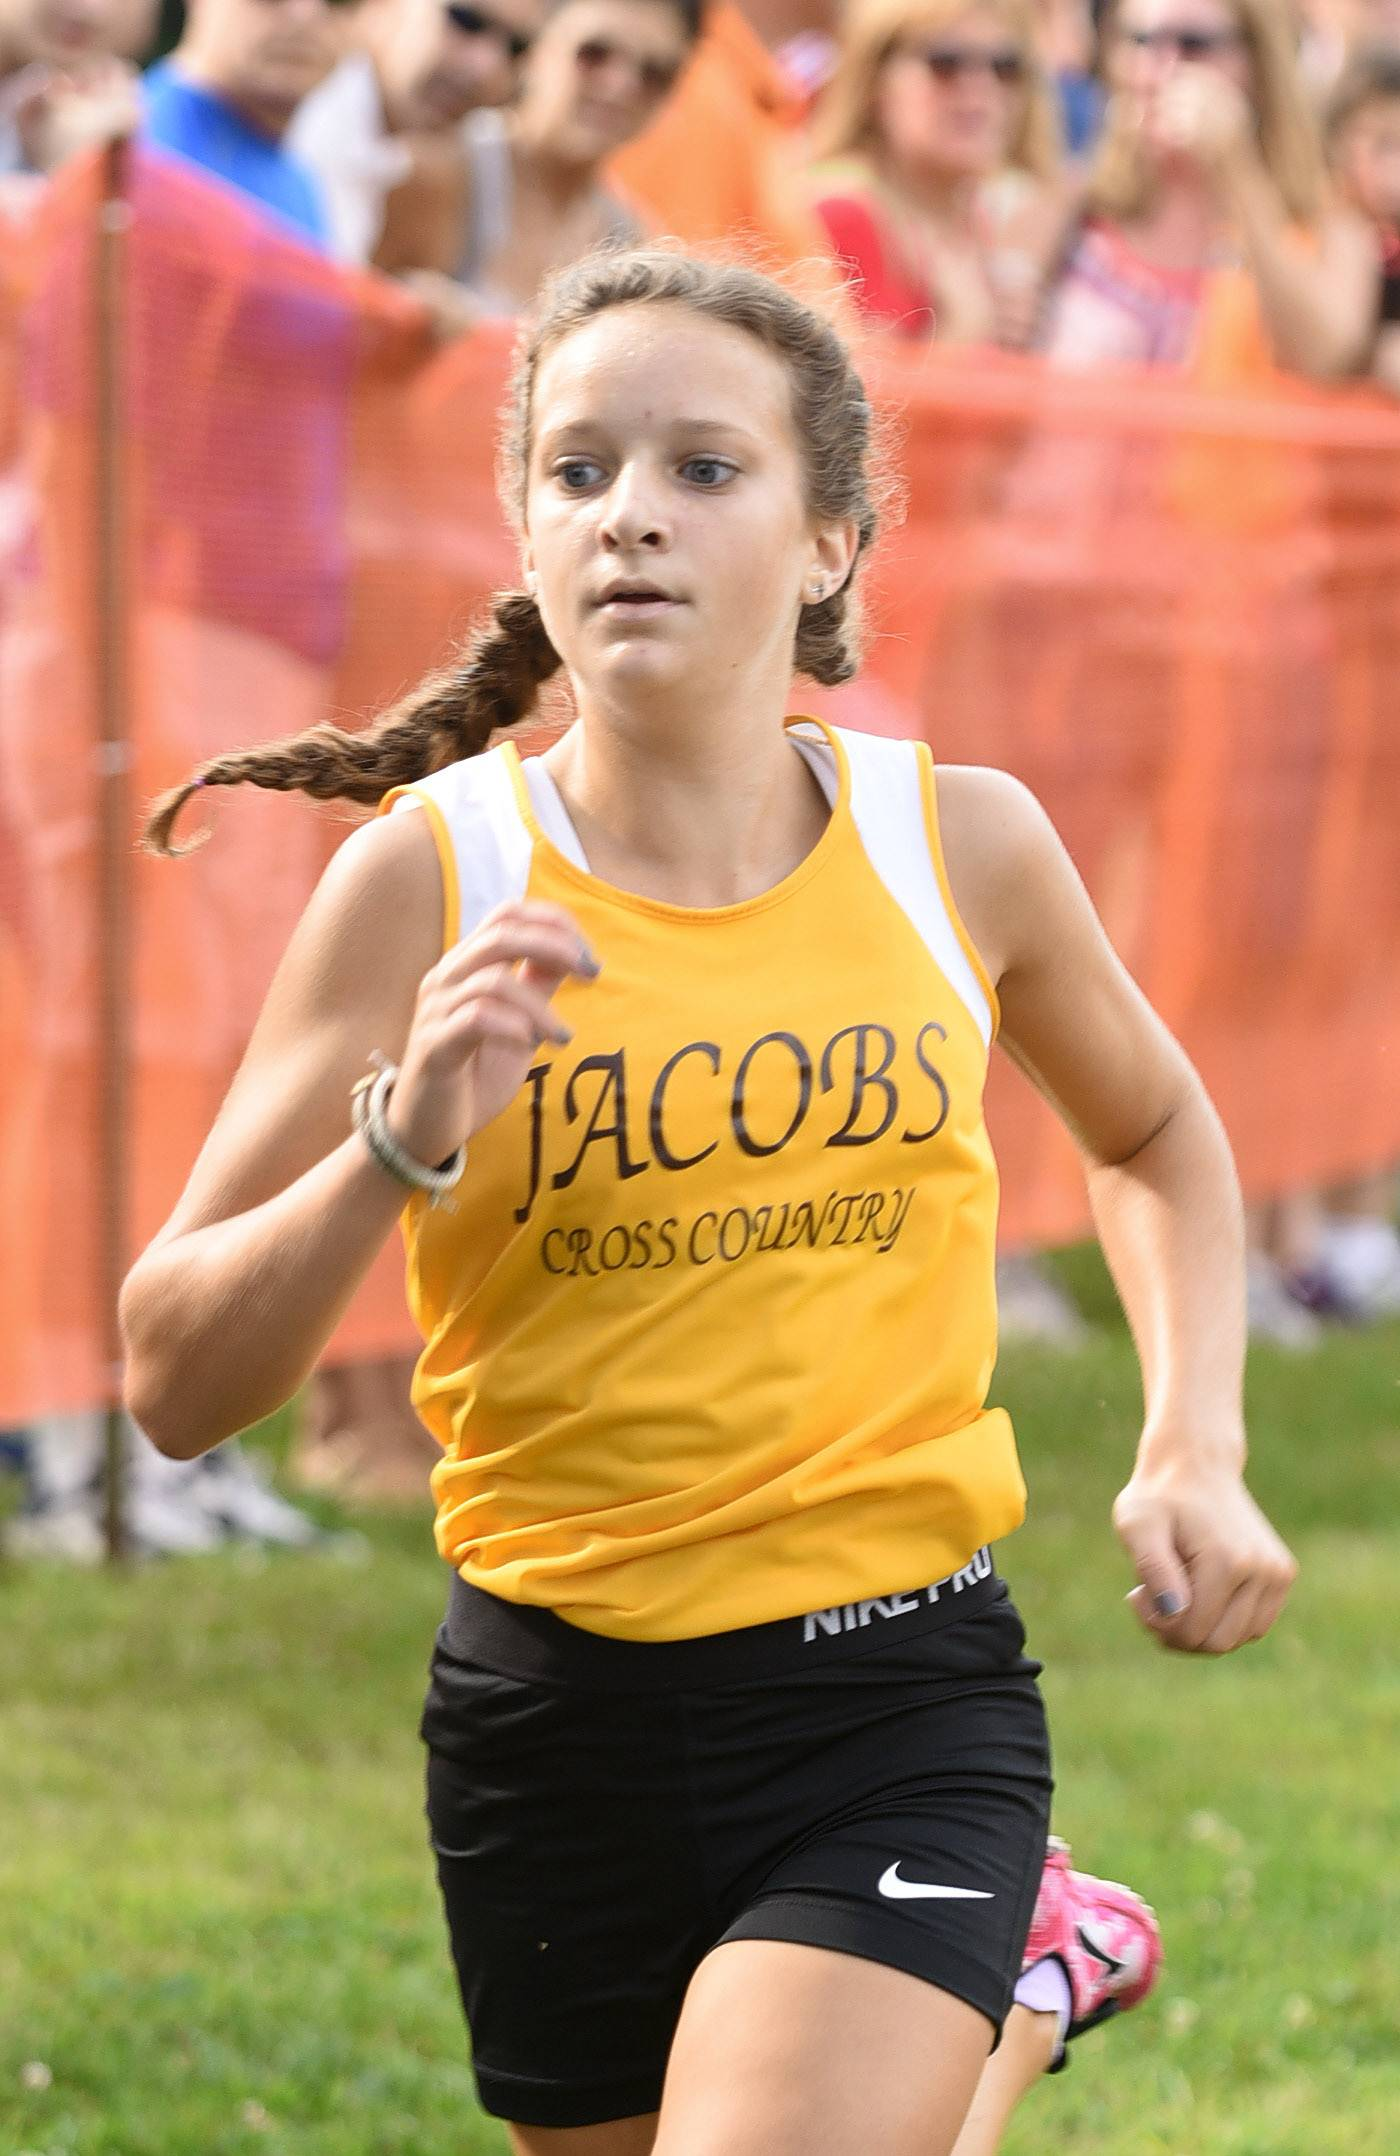 Laura Stoecker/lstoecker@dailyherald.comJacobs' Chloe Walsh finishes first for her team and 16th overall in the girls varsity run in the St. Charles East Leavey Invitational at LeRoy Oakes Forest Preserve in St. Charles Saturday.